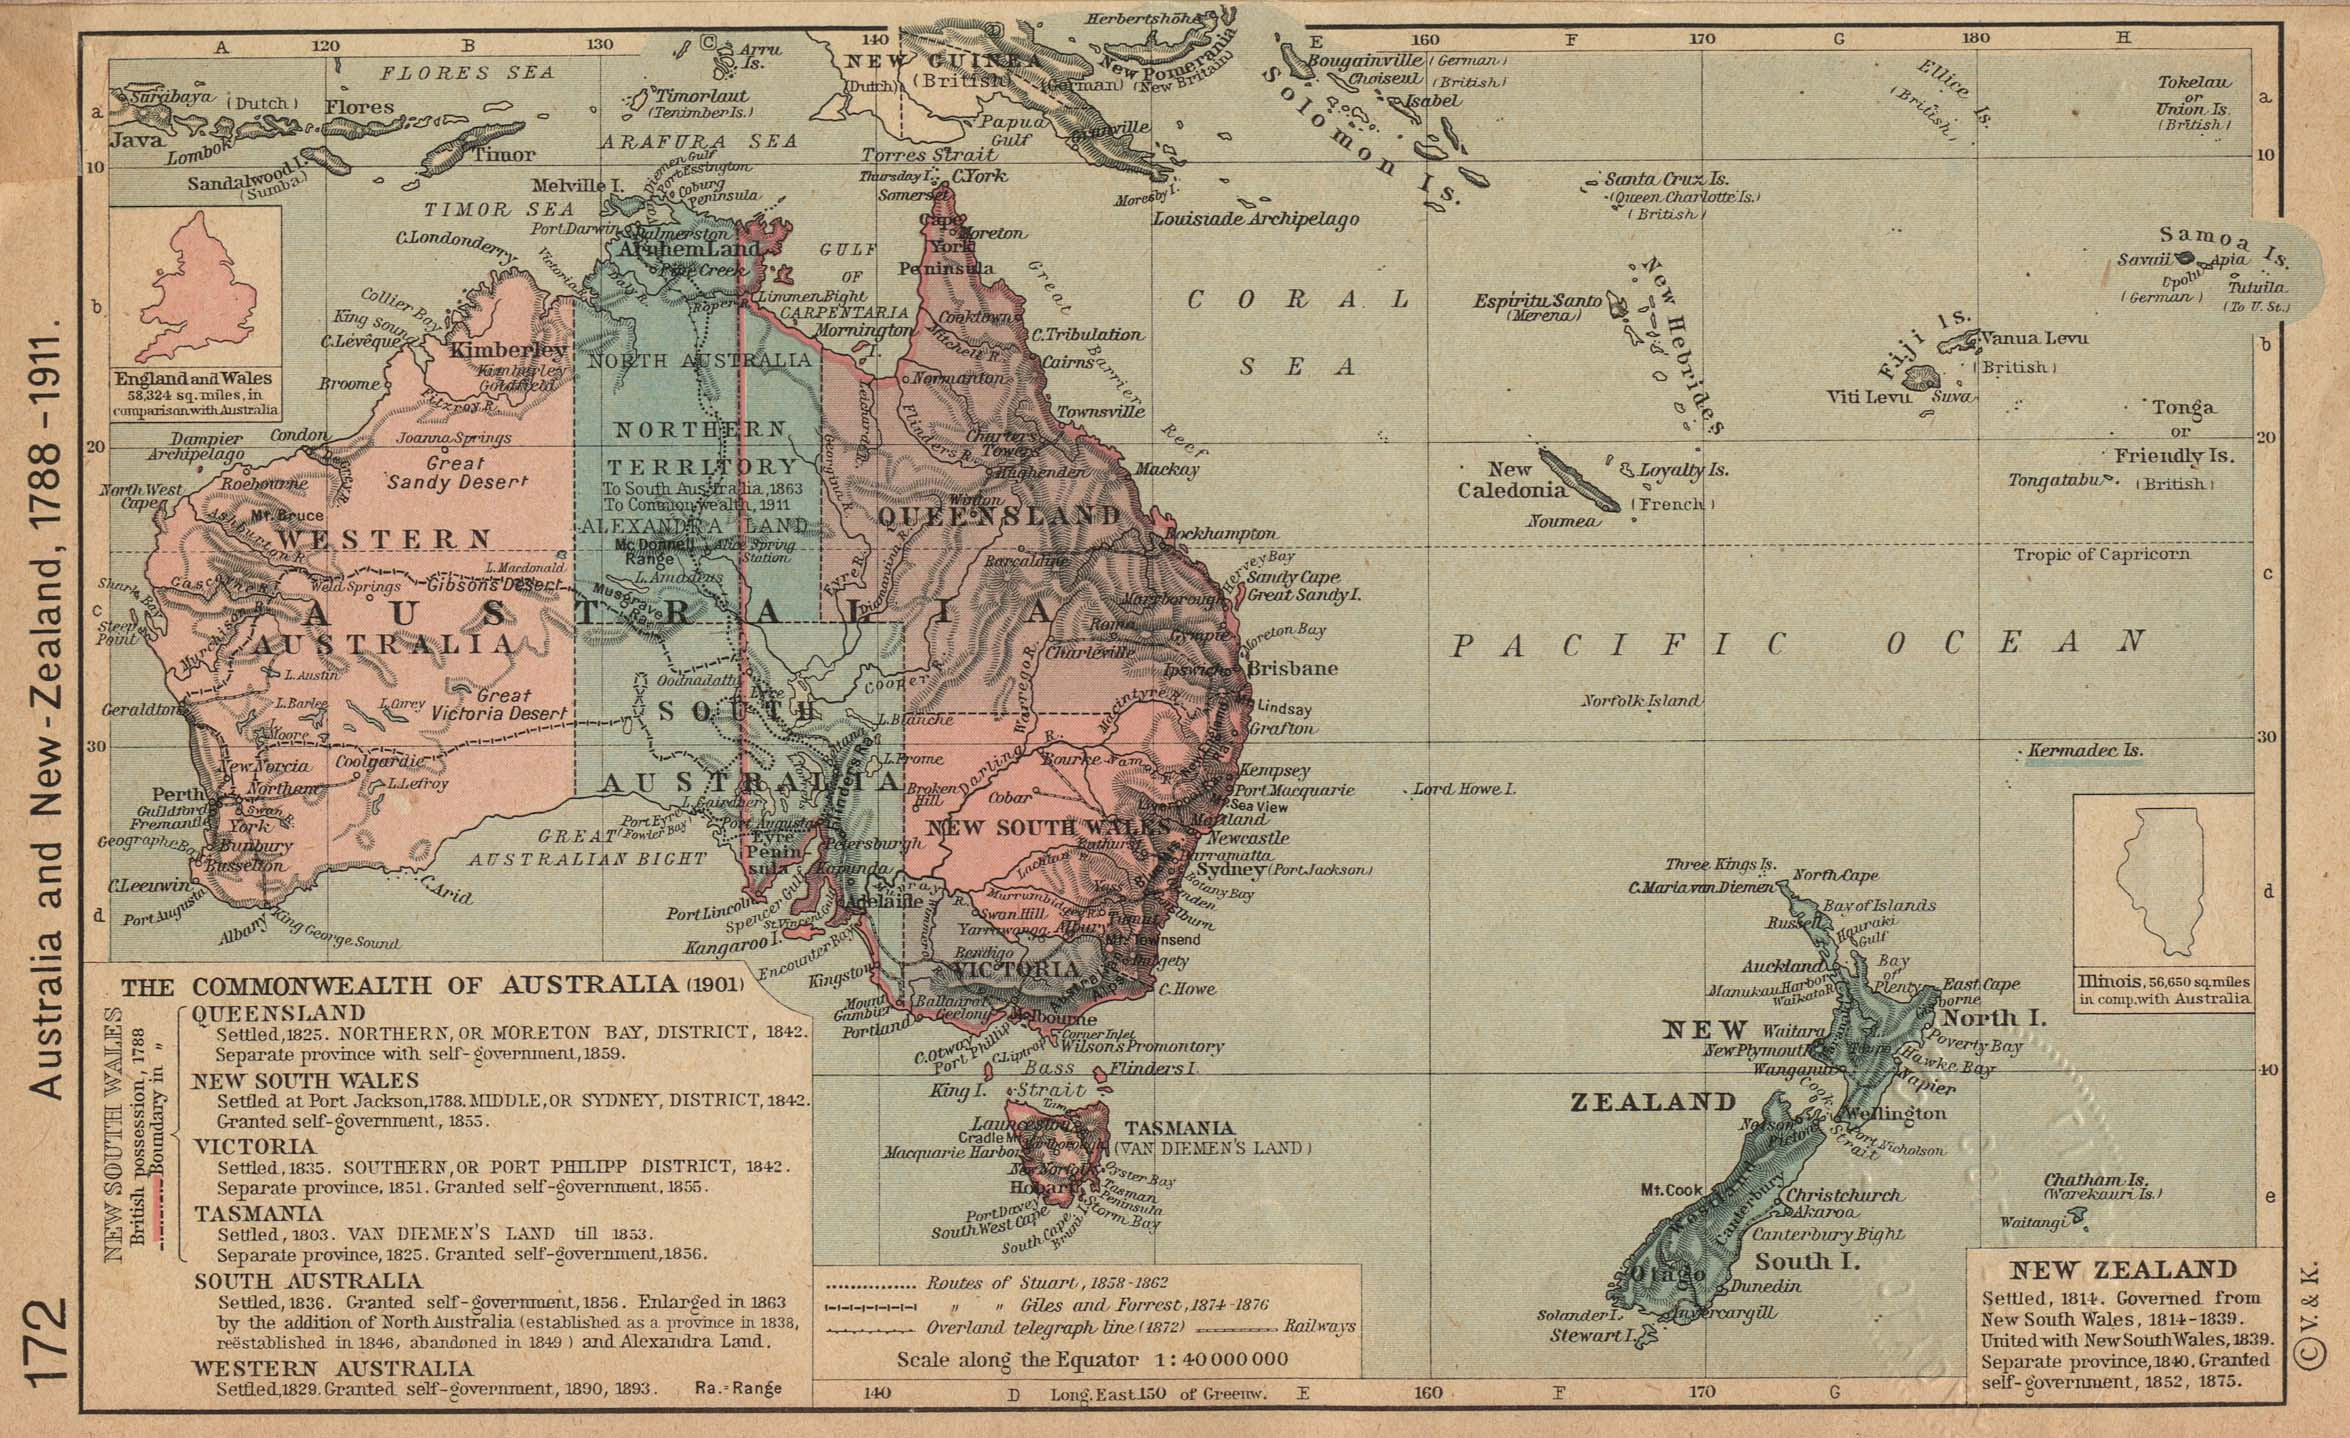 Australia Map In R.1up Travel Historical Maps Of Australia And The Pacific Australia